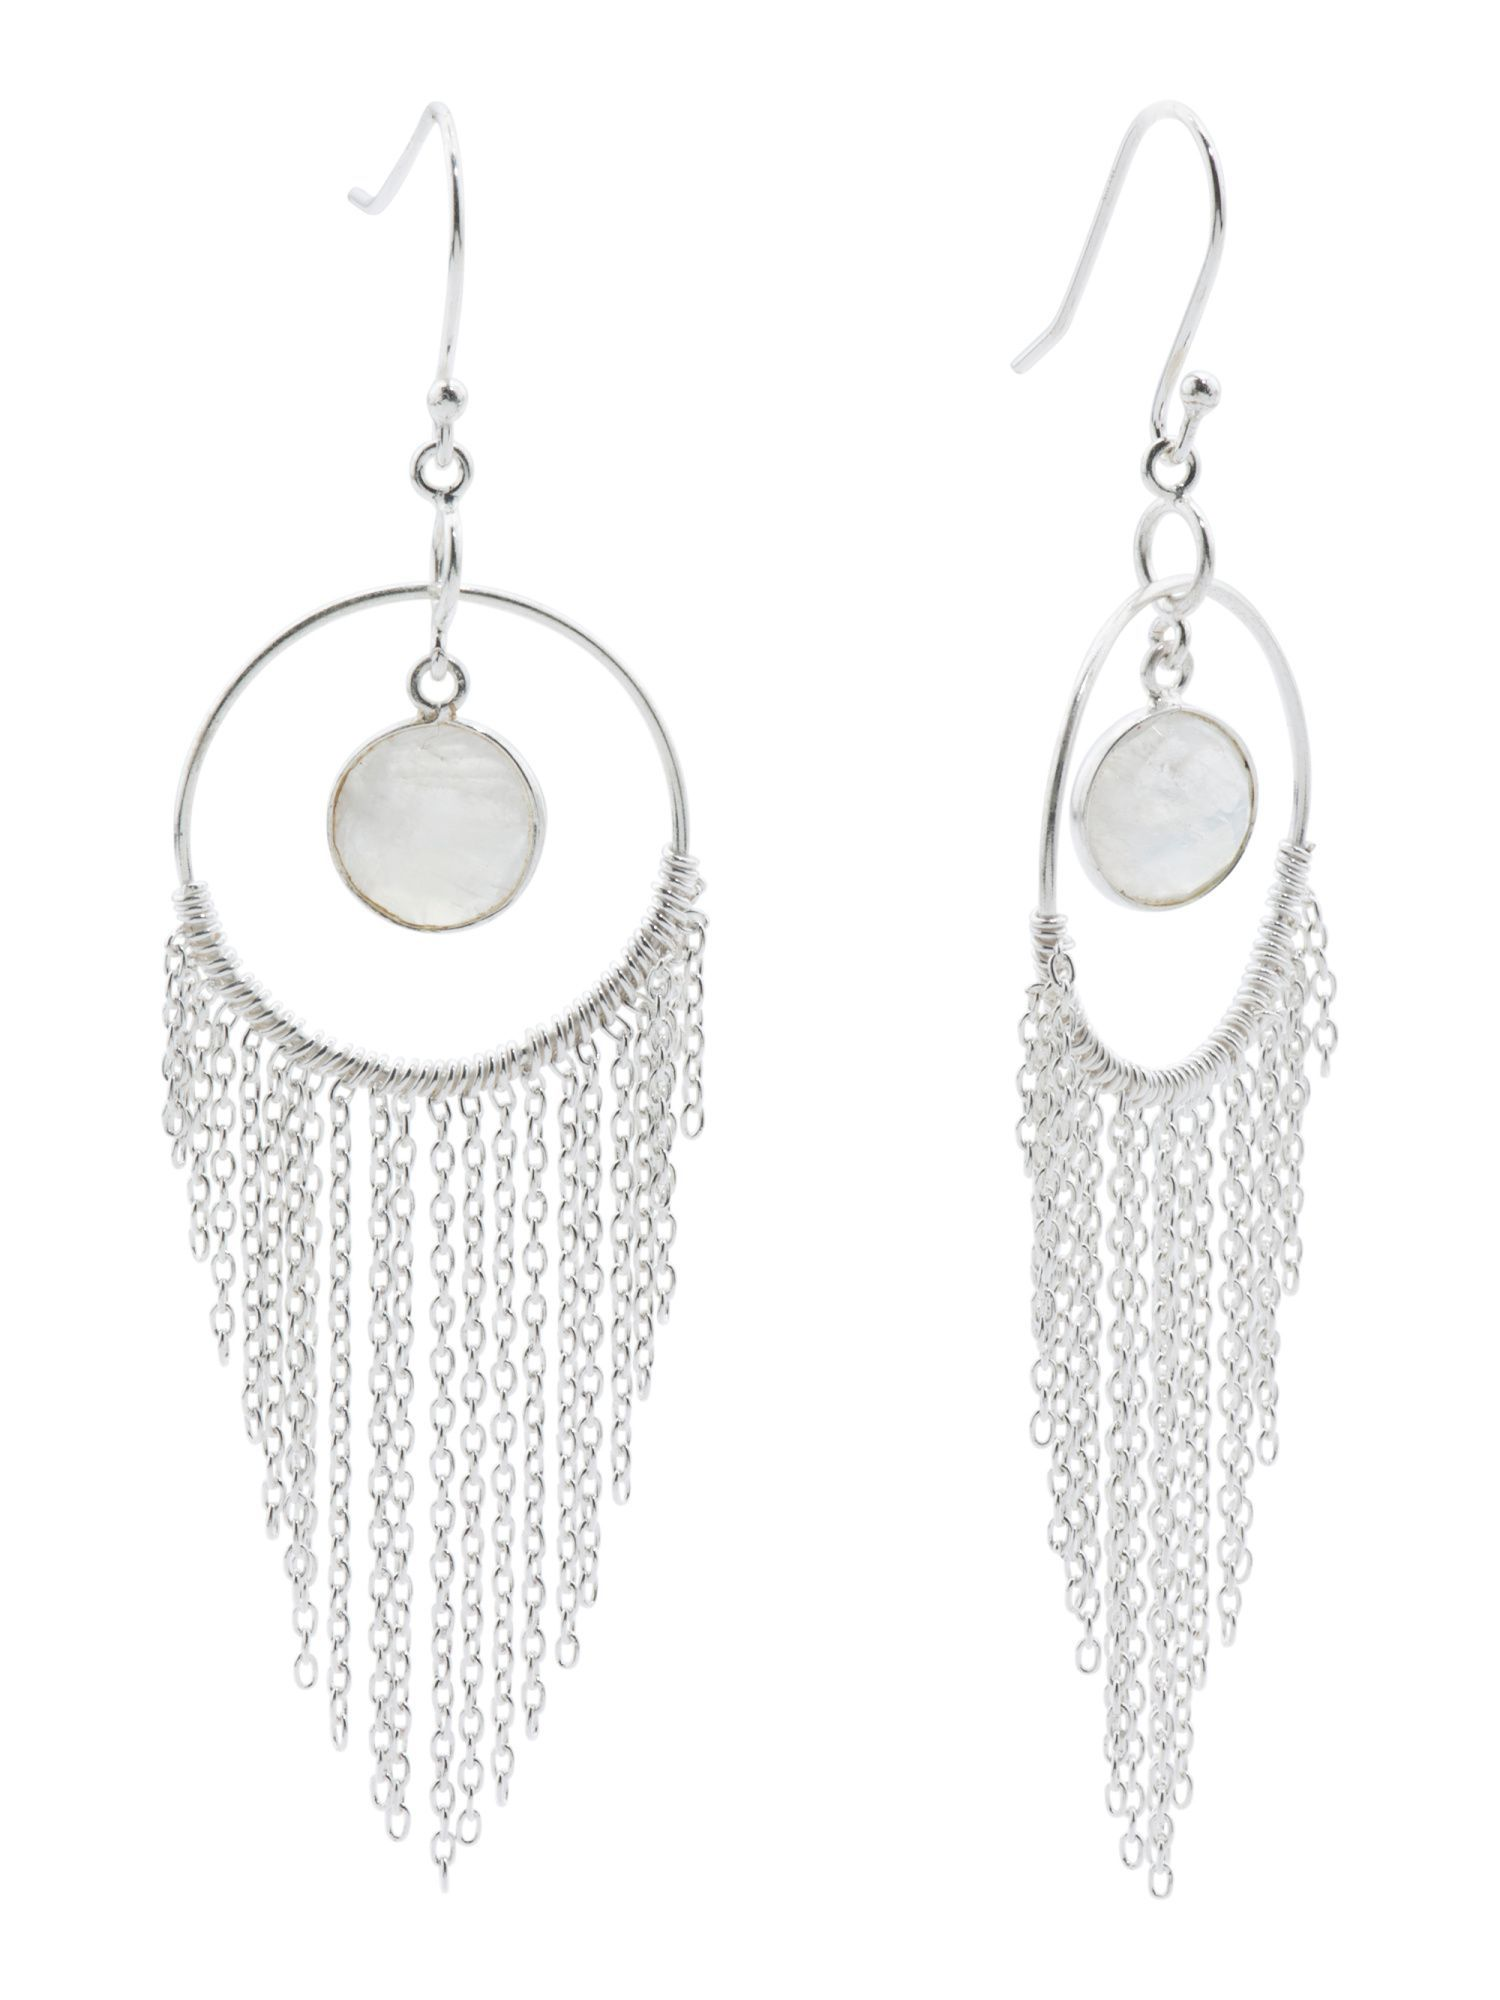 9e410dd9d7e4a Made In India Sterling Silver Tassel Hoop Earrings | Products ...